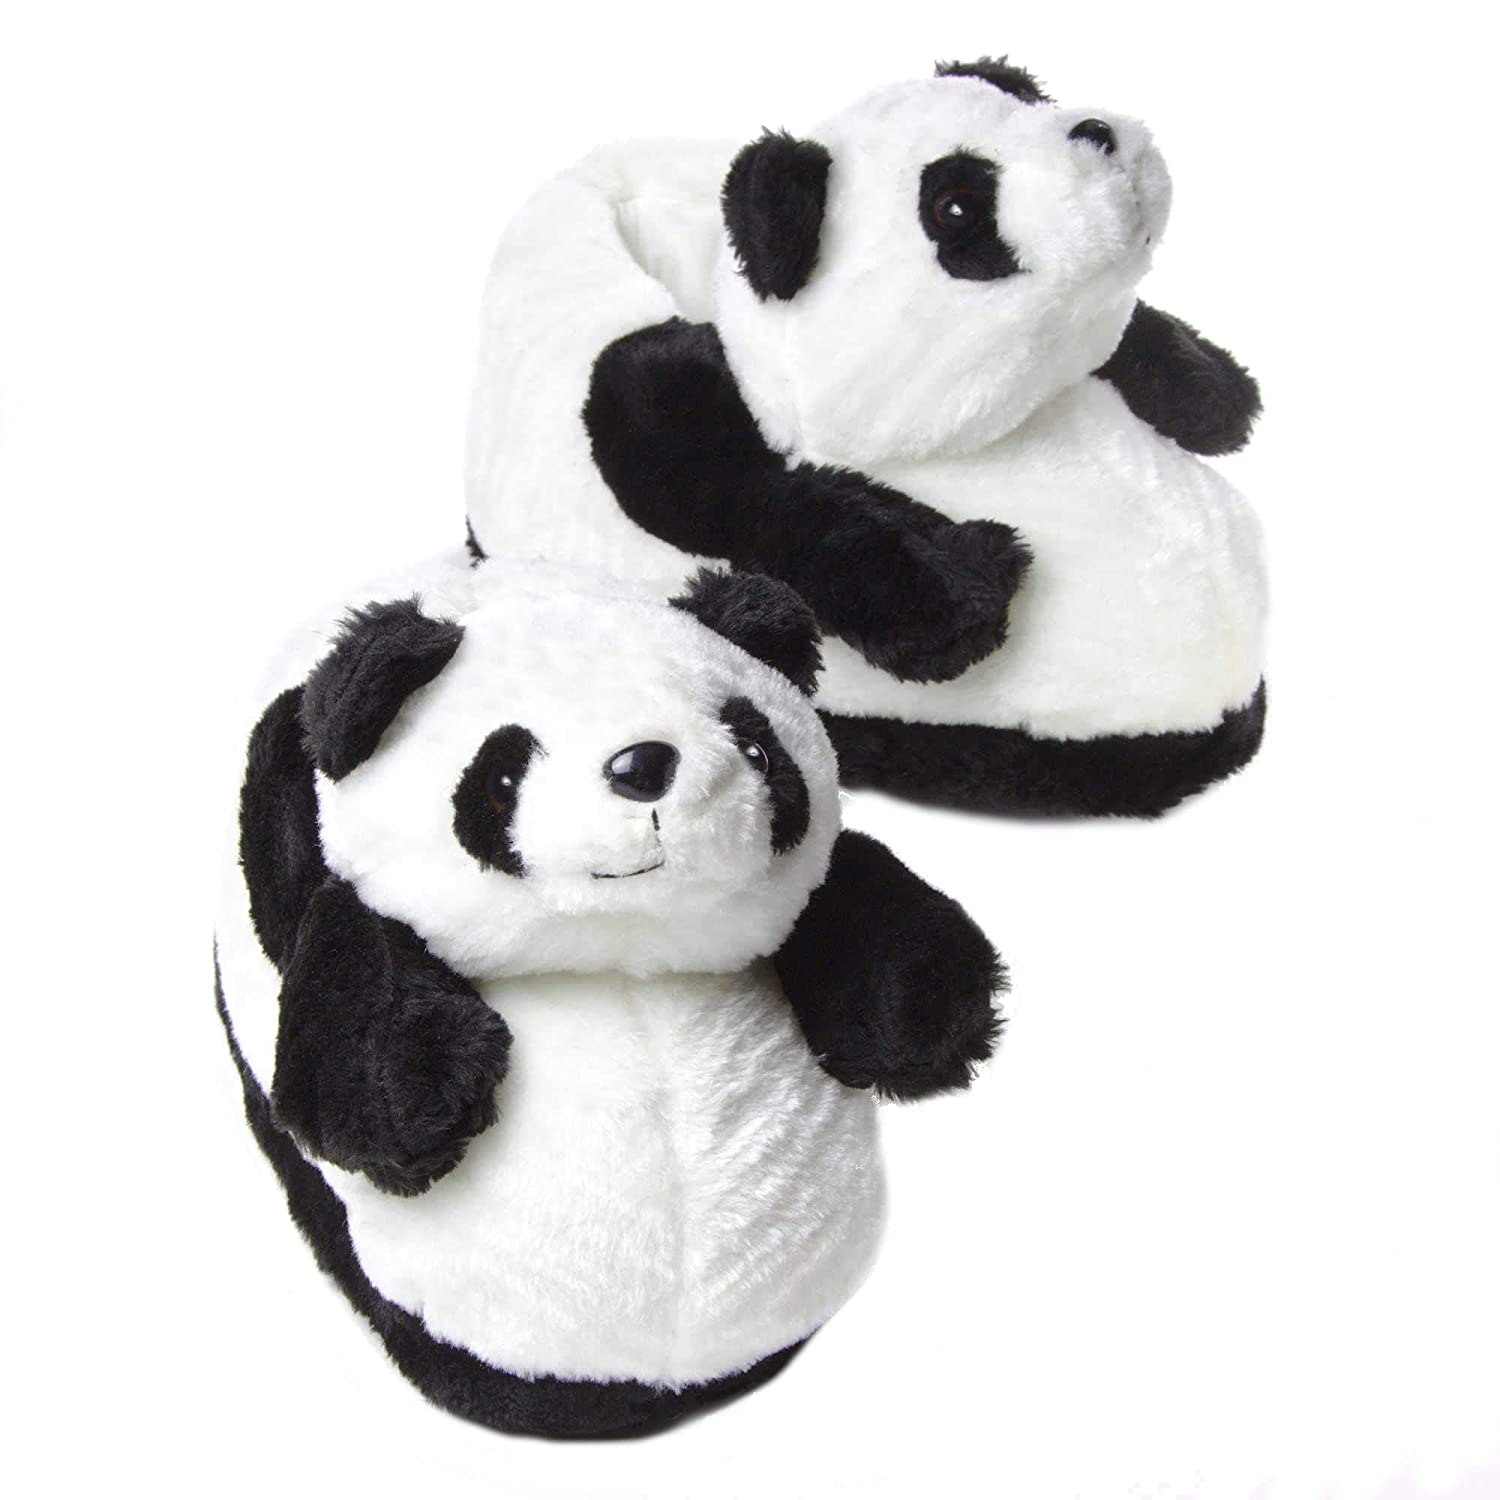 Sleeper'z - Panda - Chaussons animaux peluche - Homme Femme Enfant -...